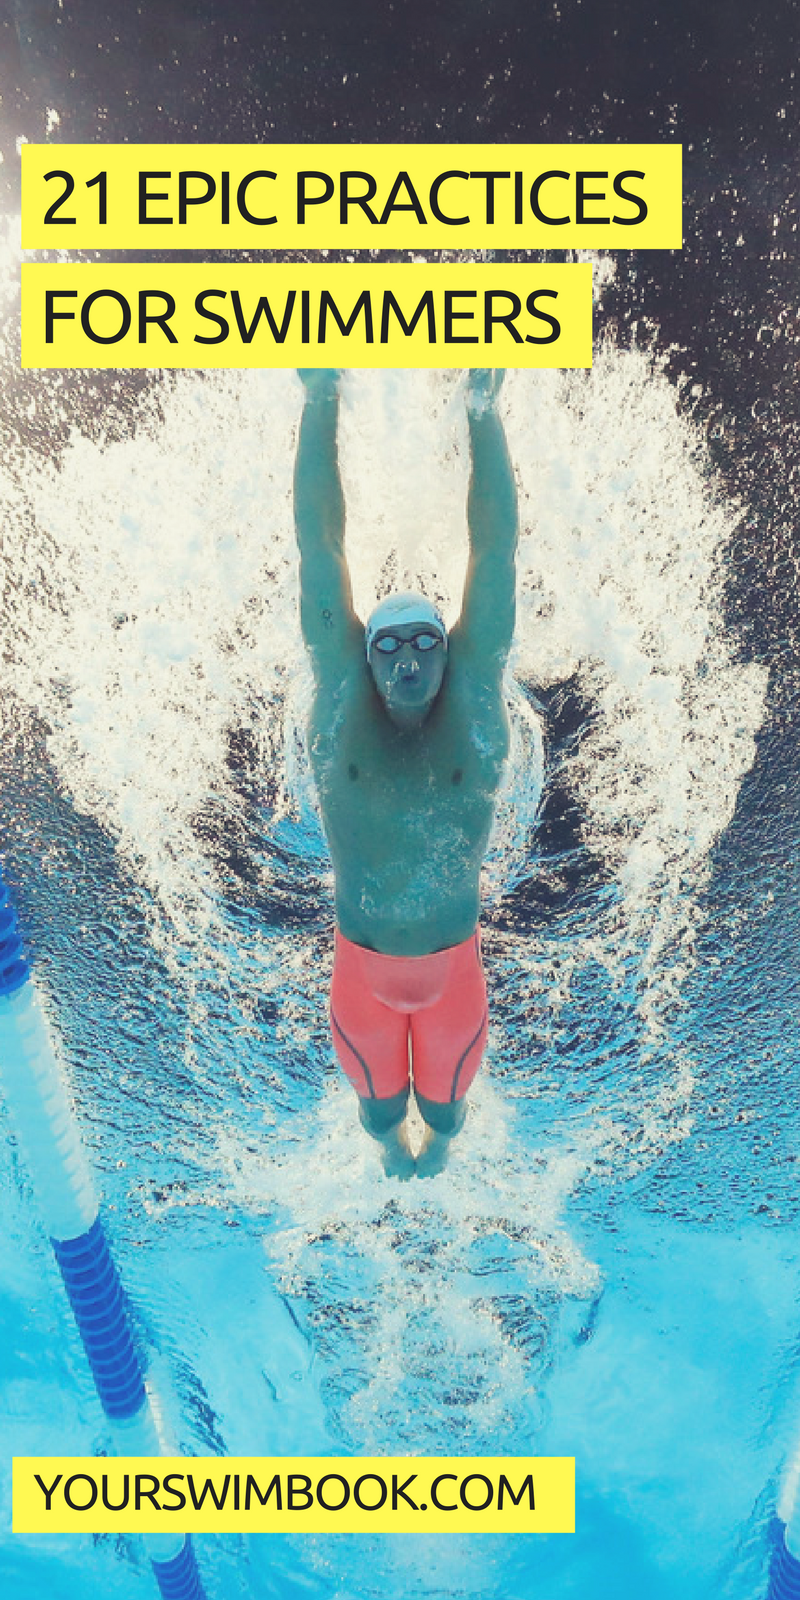 Swimming Workouts The 40 Ultimate Practices for Swimmers